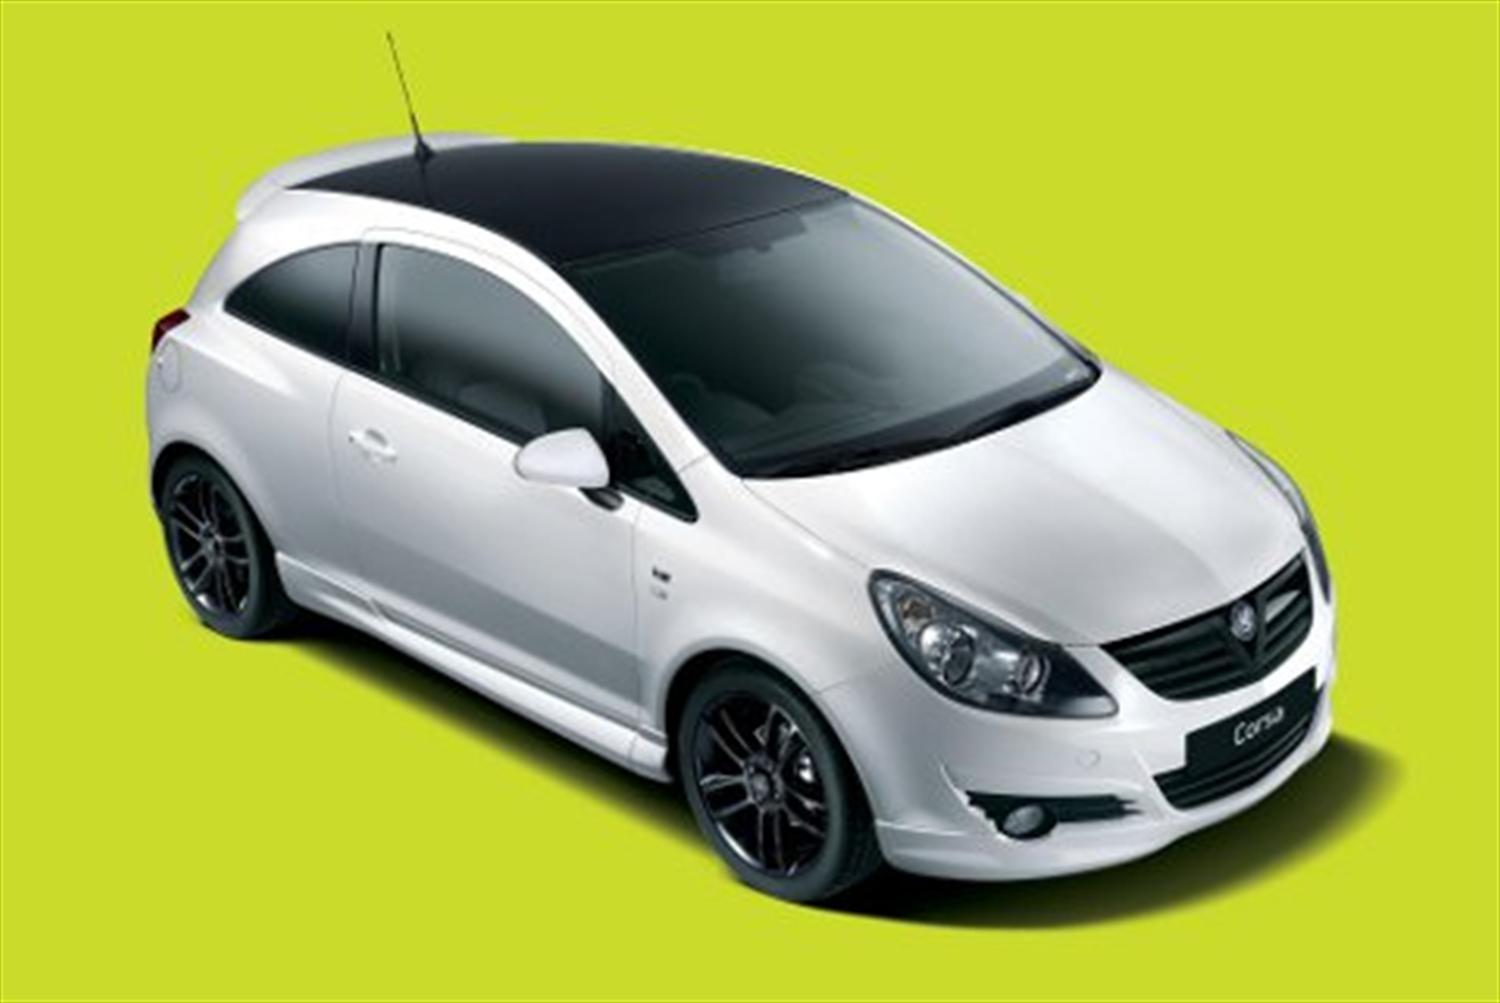 Vauxhall Corsa Black & White Limited Edition Unveiled